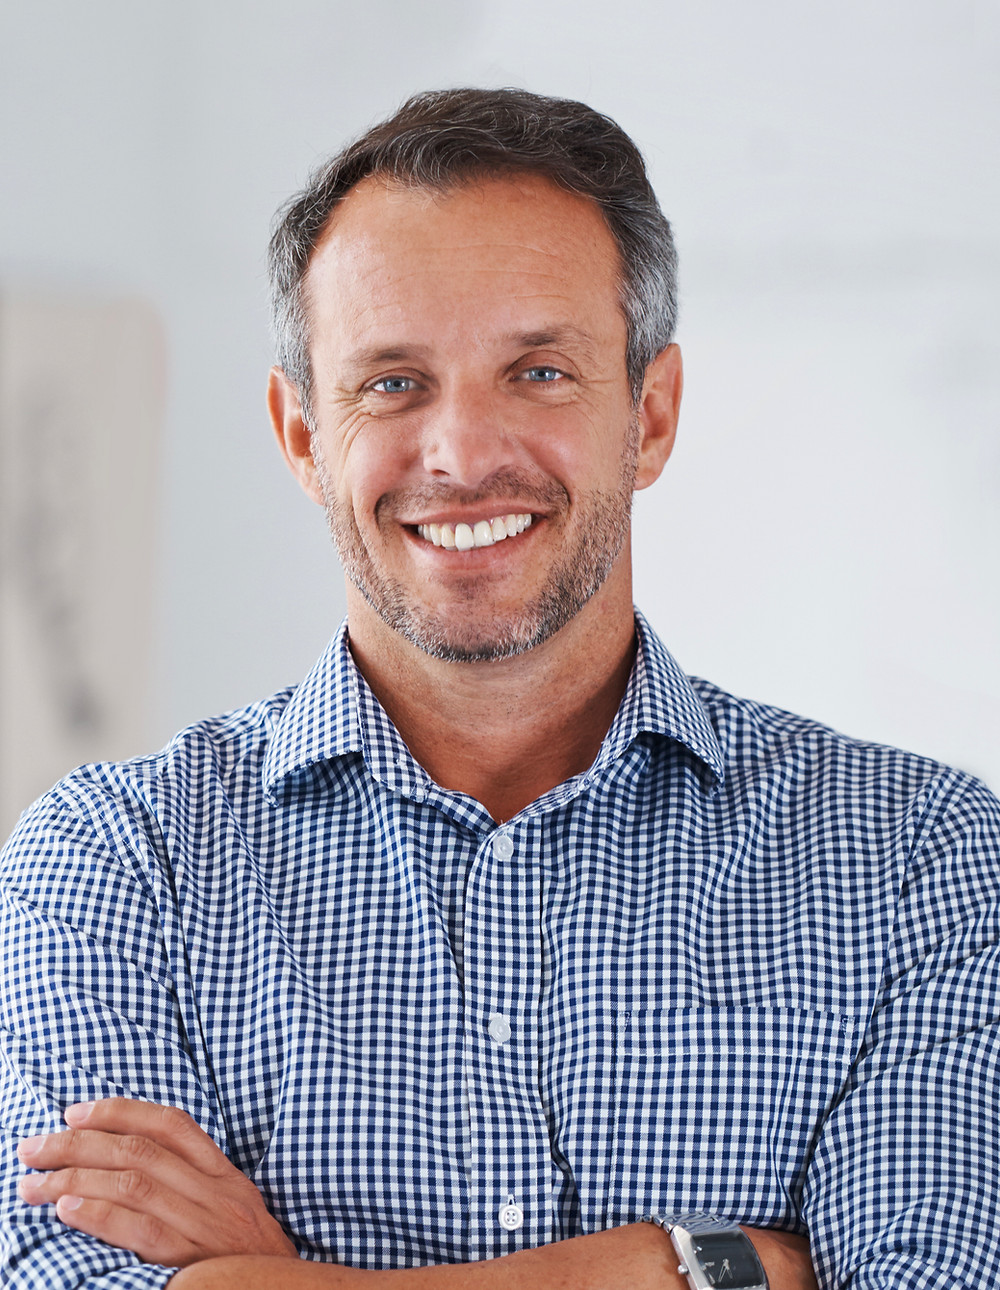 Middle Aged Man Chiropractic Helps Chronic Back Pain - Study Chiropractic Windsor Prahran 3181 Dr Nathan Jenner